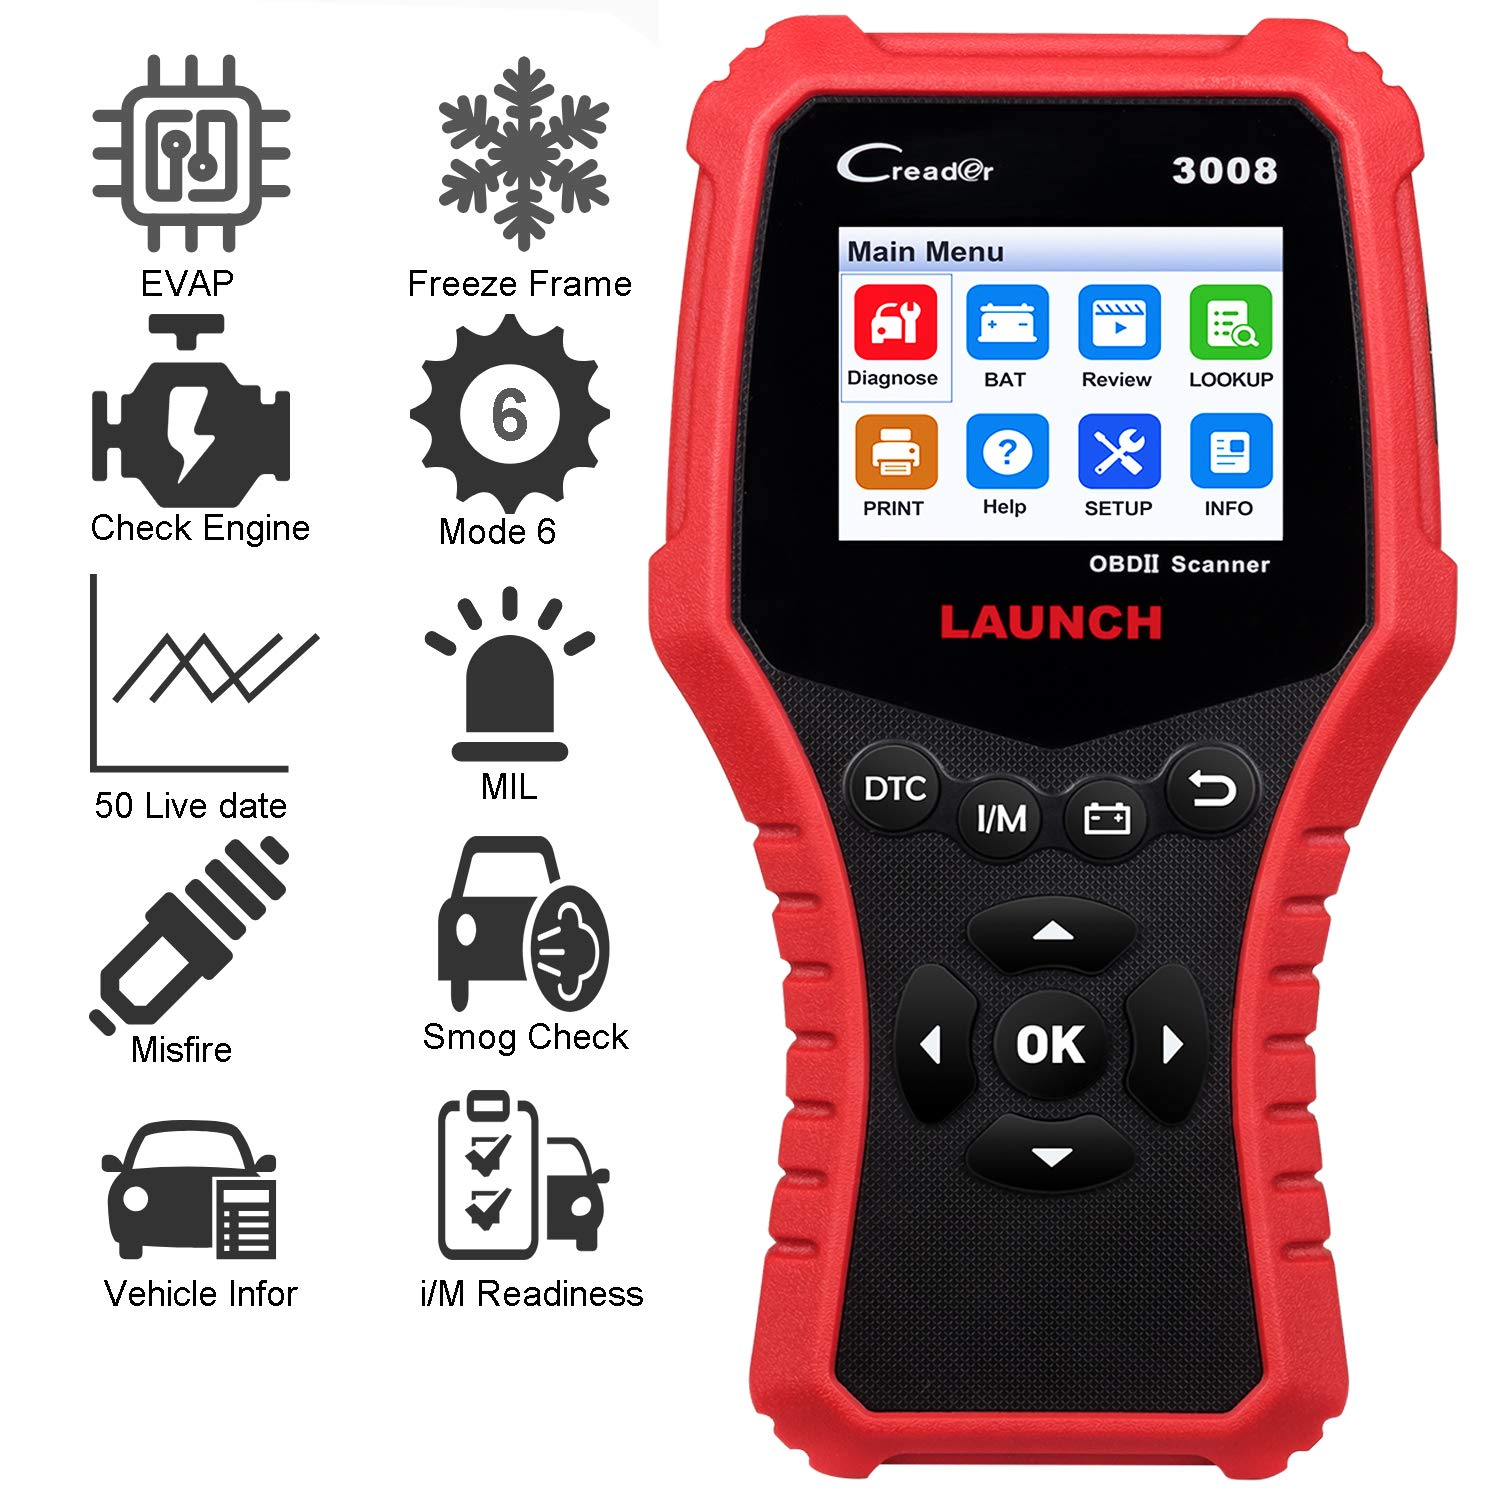 LAUNCH CRP3008 Creader 3008 Professional OBD2 Scanner Enhanced OBDII EOBD Code Reader, One-Key Check Engine Light I/M Readiness O2 Sensor Systems Battery Test Diagnostic Scan Tool-Free Update by LAUNCH (Image #1)